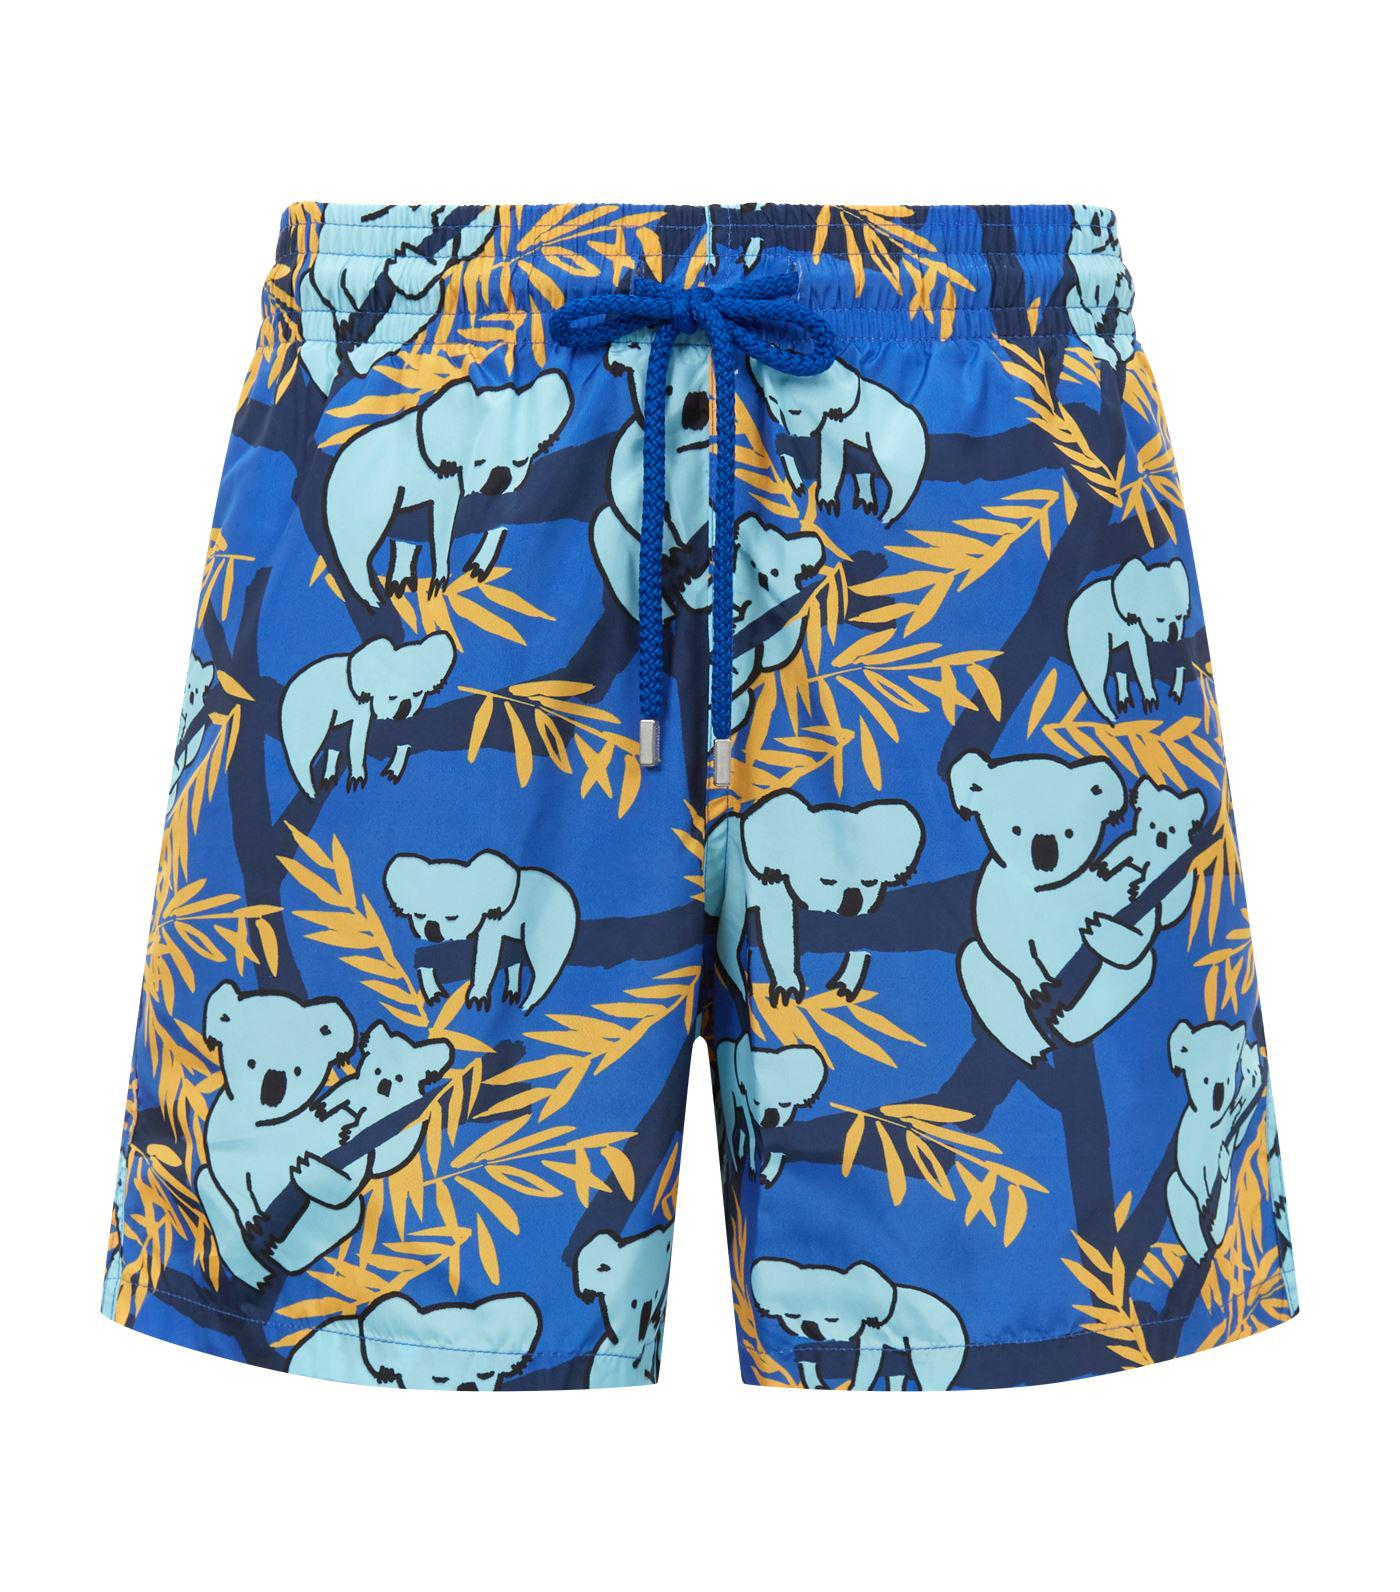 355008f361 Lyst - Vilebrequin Mahina Sydney Koala Swim Shorts in Blue for Men ...